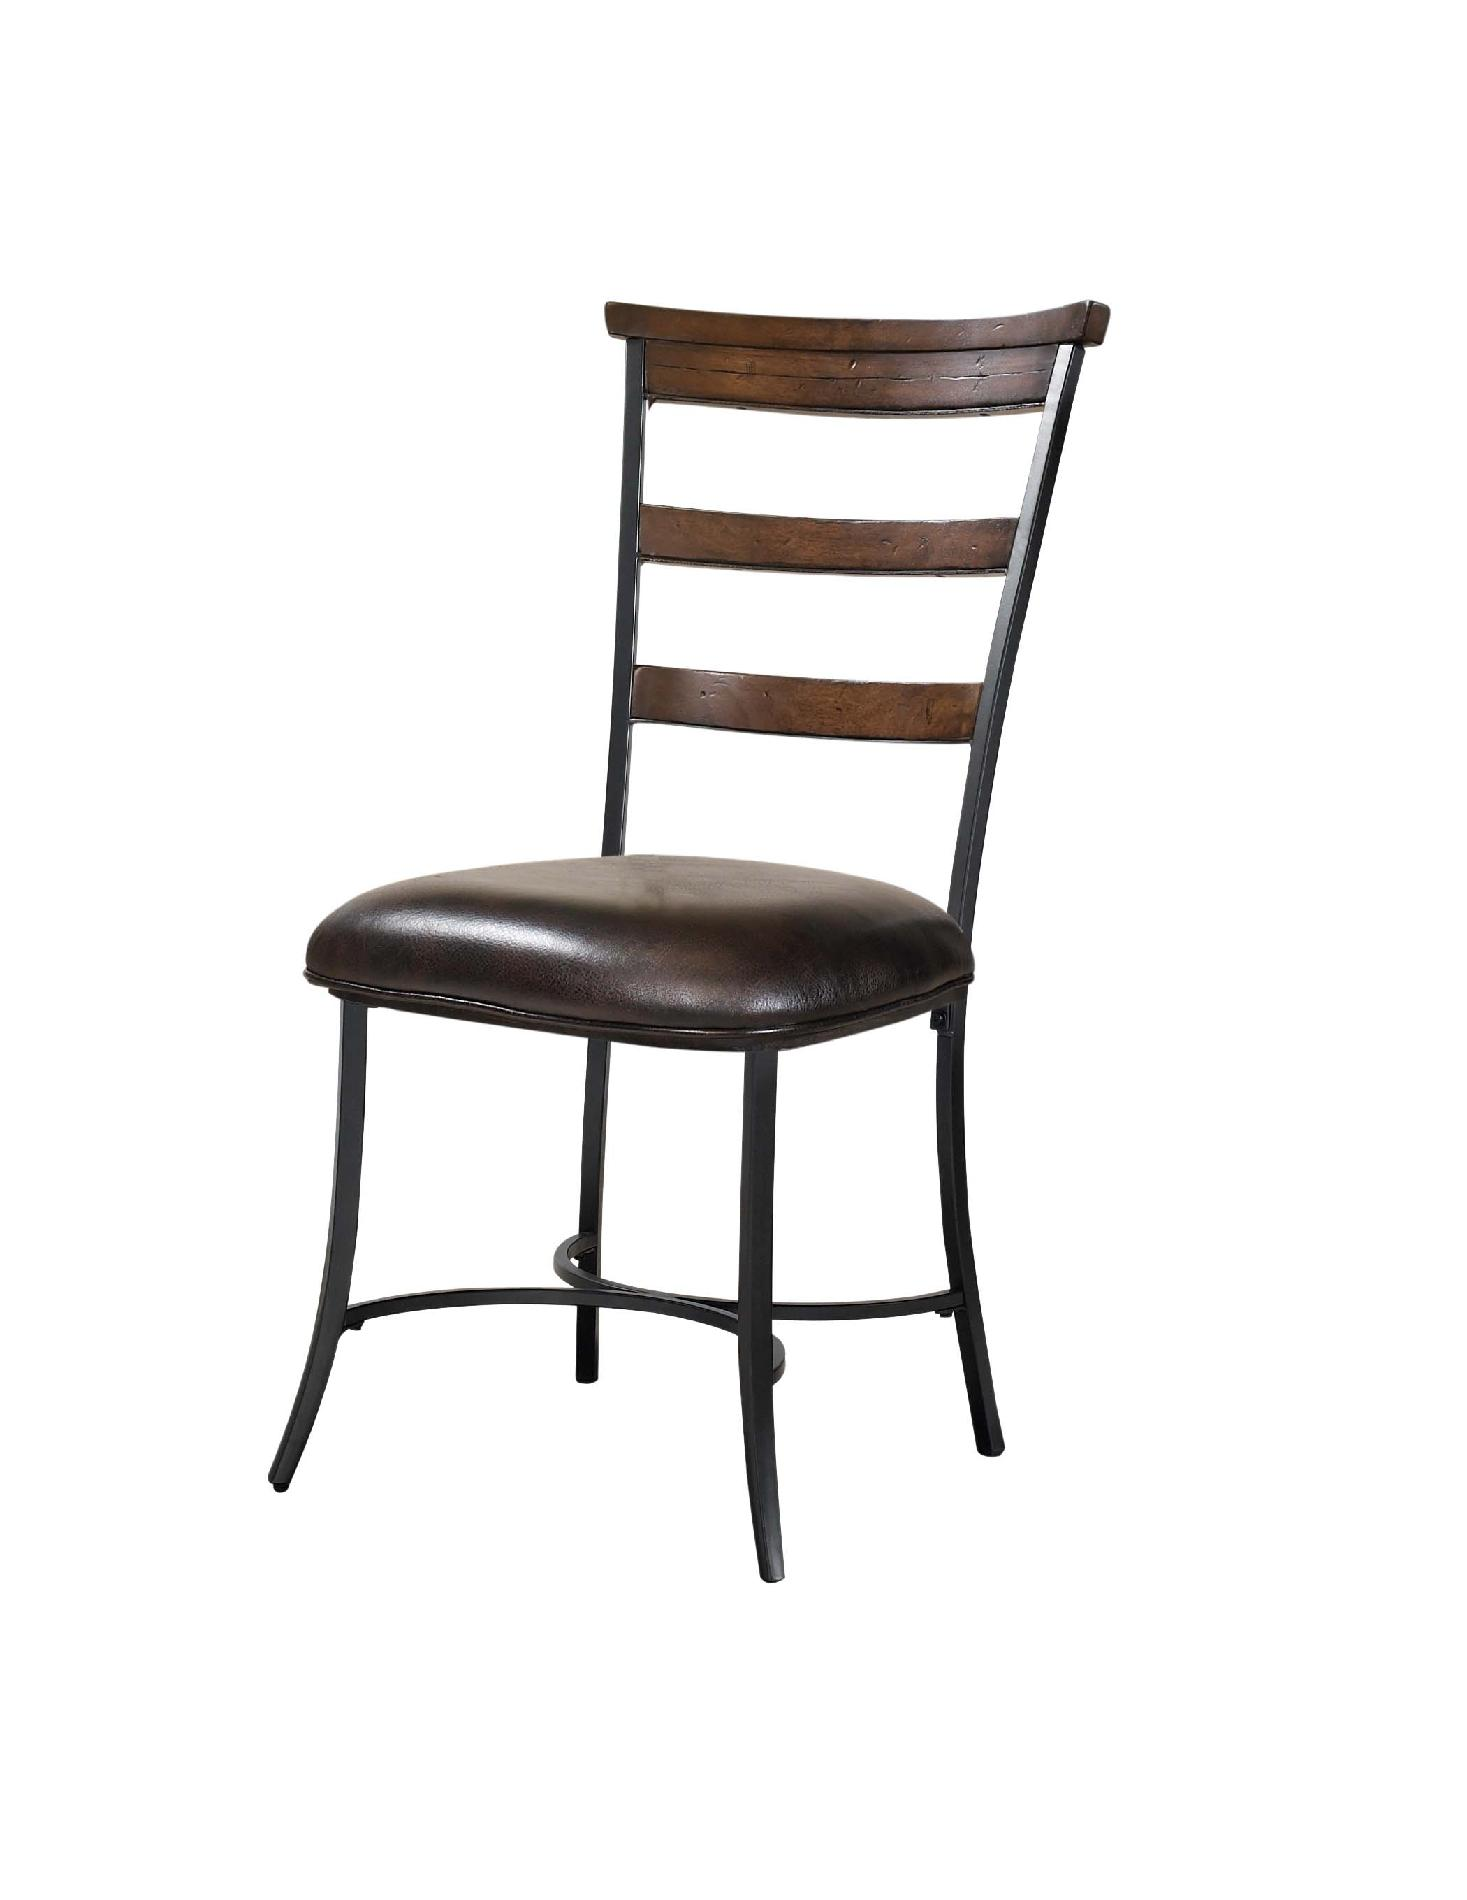 ladder back dining room chairs container store office chair hillsdale brown and gray cameron